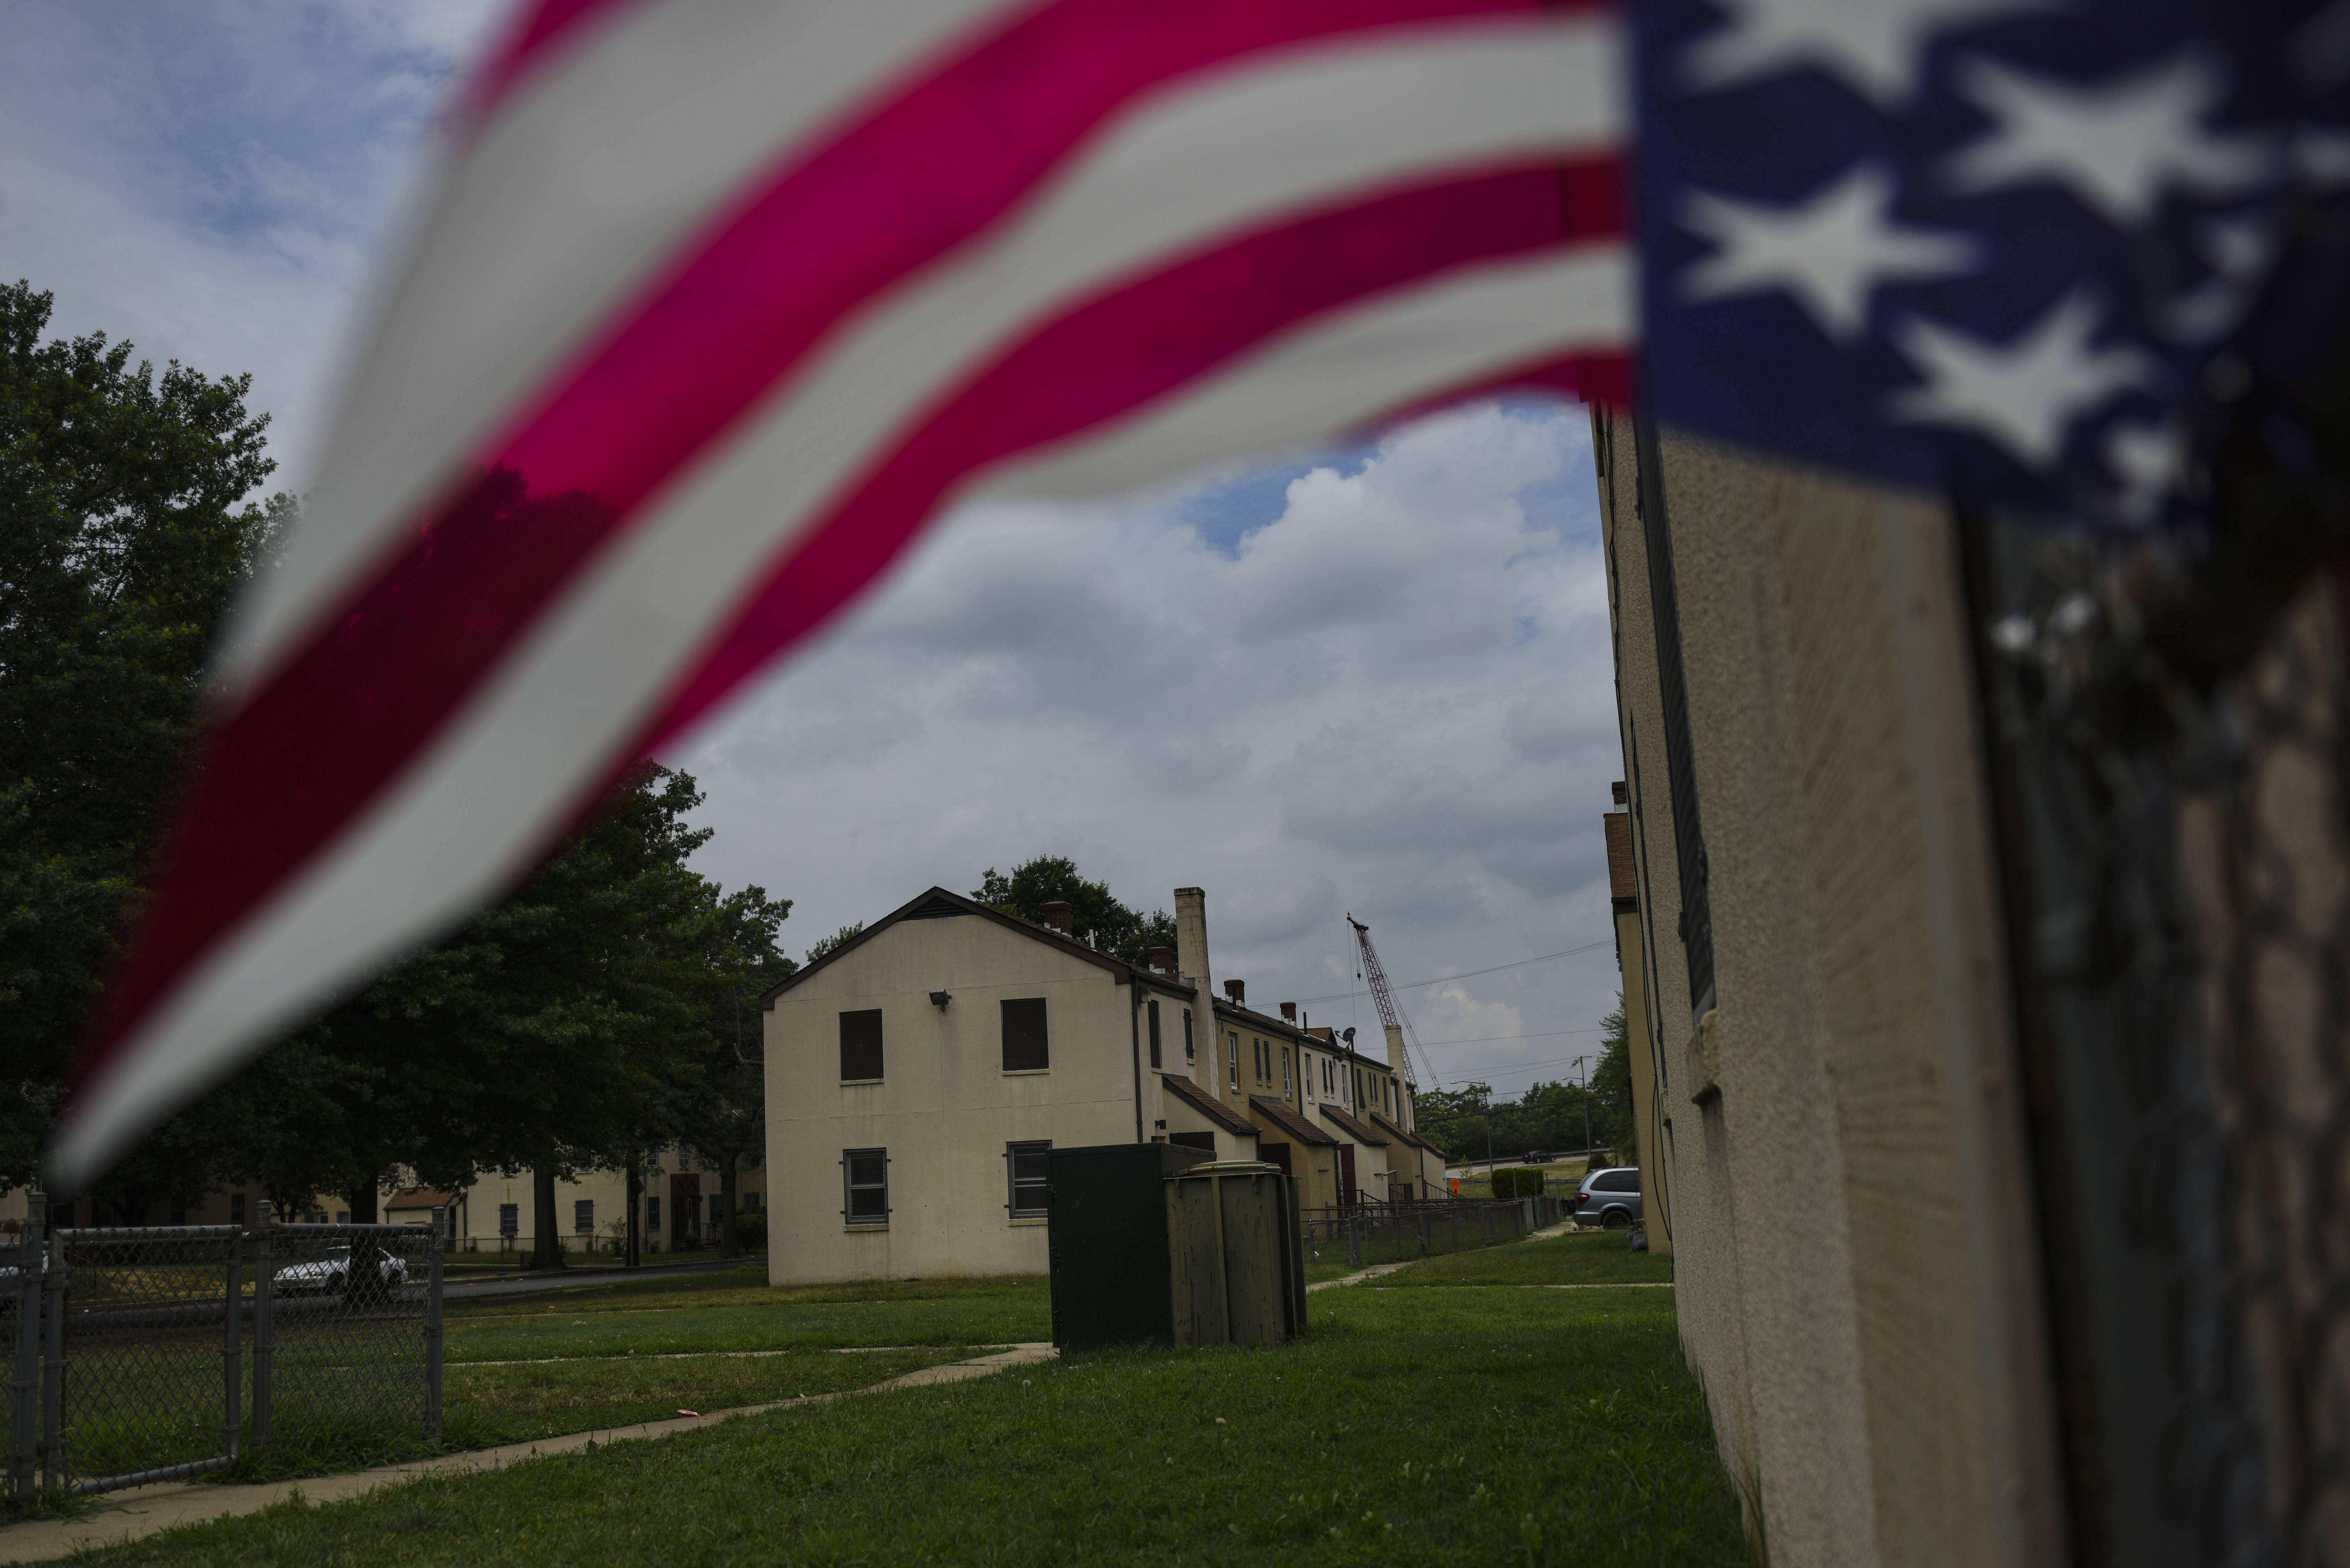 An American flag flies July 5, 2017, at Barry Farm, a Washington D.C. housing development that is to be demolished and rebuilt into multi-income housing.